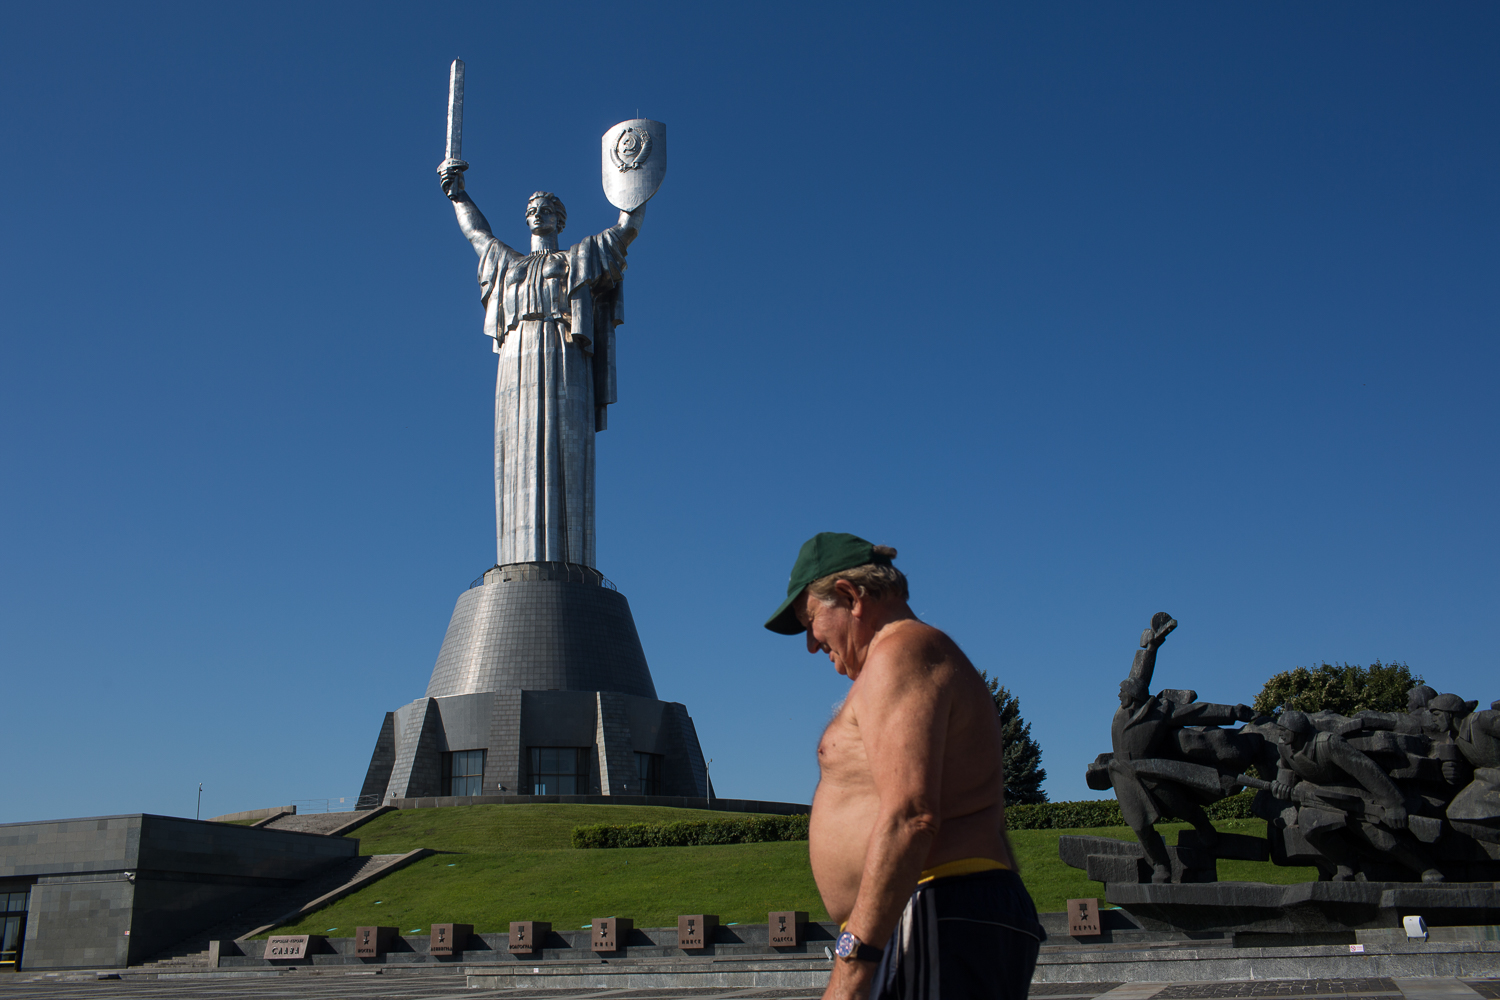 The 102-metre tall Rodina Mat monument in Kiev, complete with Soviet hammer and sickle on her shield, celebrates the WWII victory. Ukraine's history is closely intertwined with that of the Soviet Union. Many people are proud of the part their grandmothers and grandfathers played in winning WWII [John Wendle/Al Jazeera]